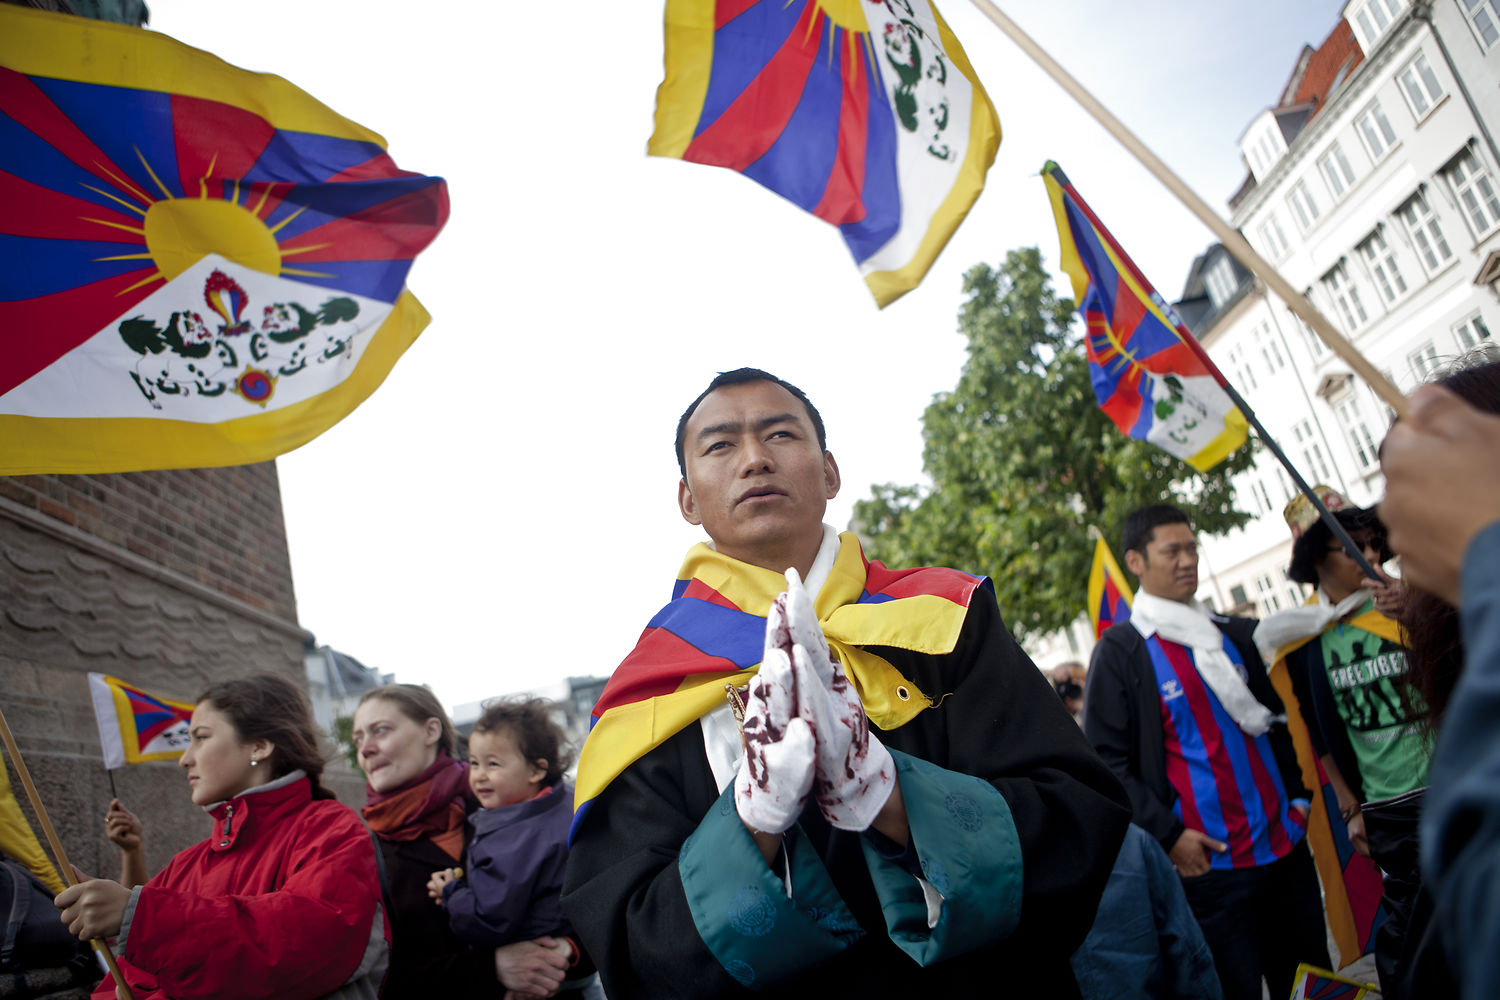 Denmark widens probe of police excesses on Tibet protesters during Chinese state visits